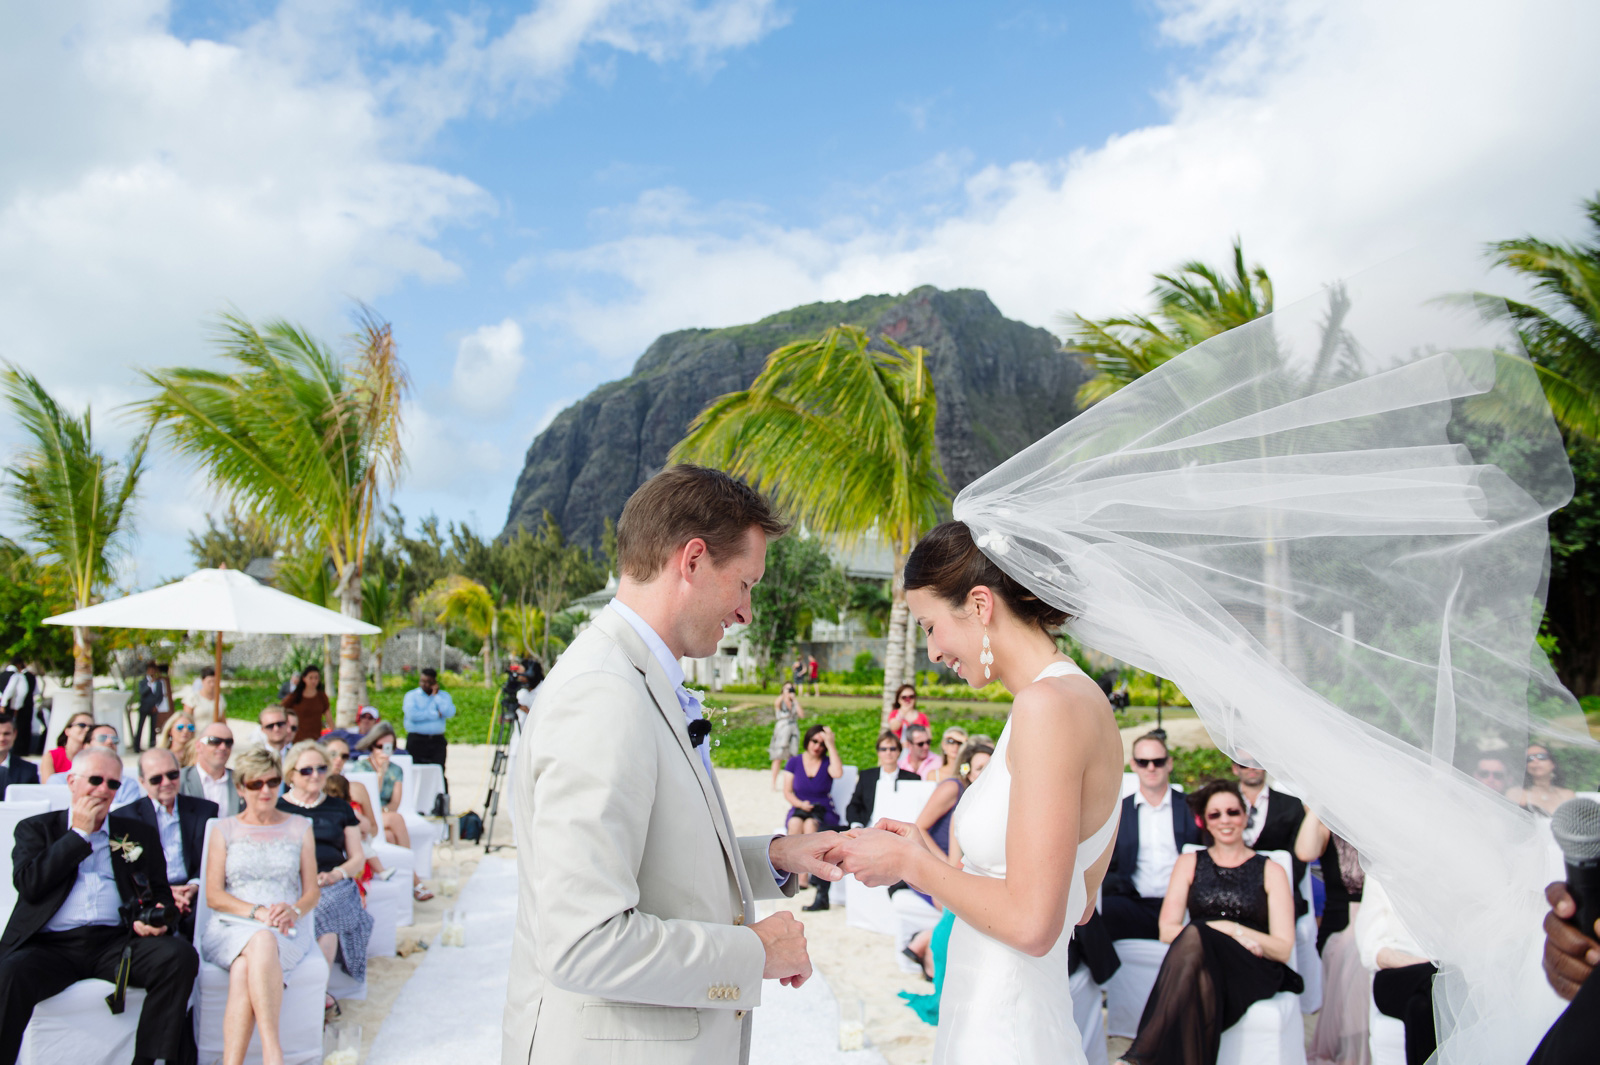 Mauritius windy wedding